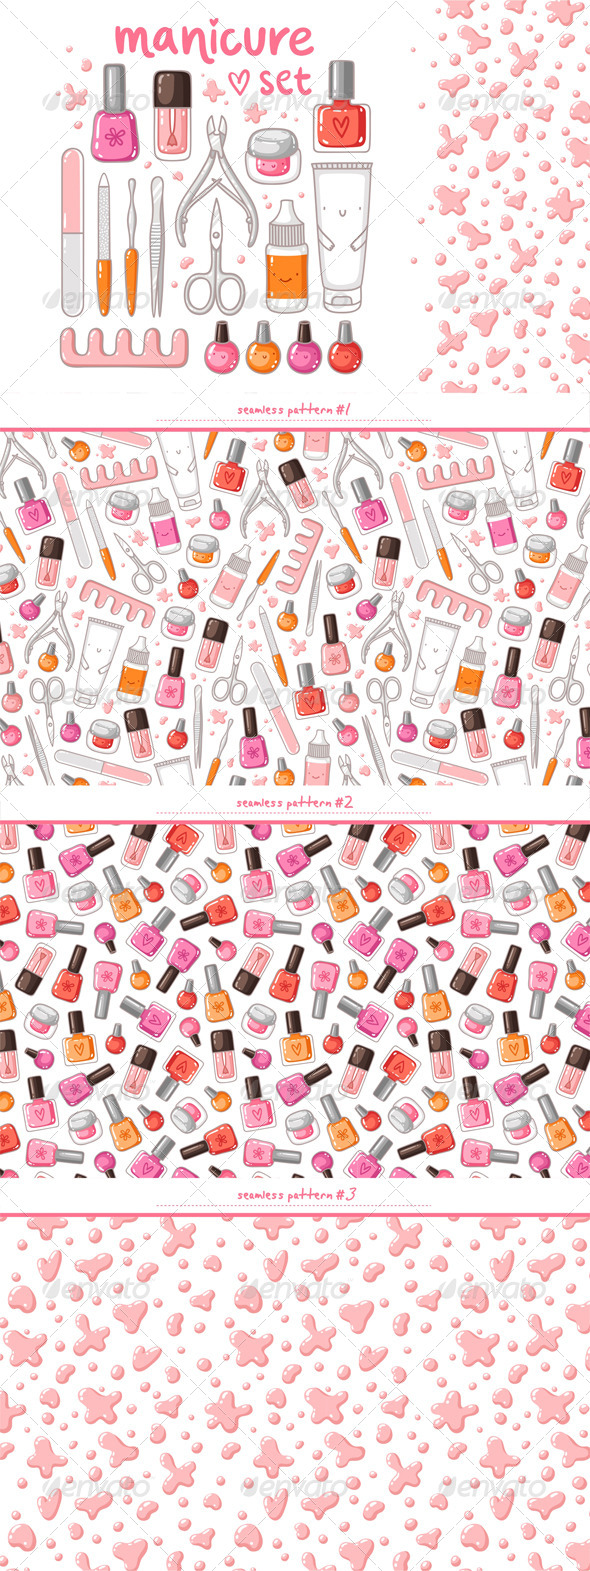 Manicure - Miscellaneous Vectors